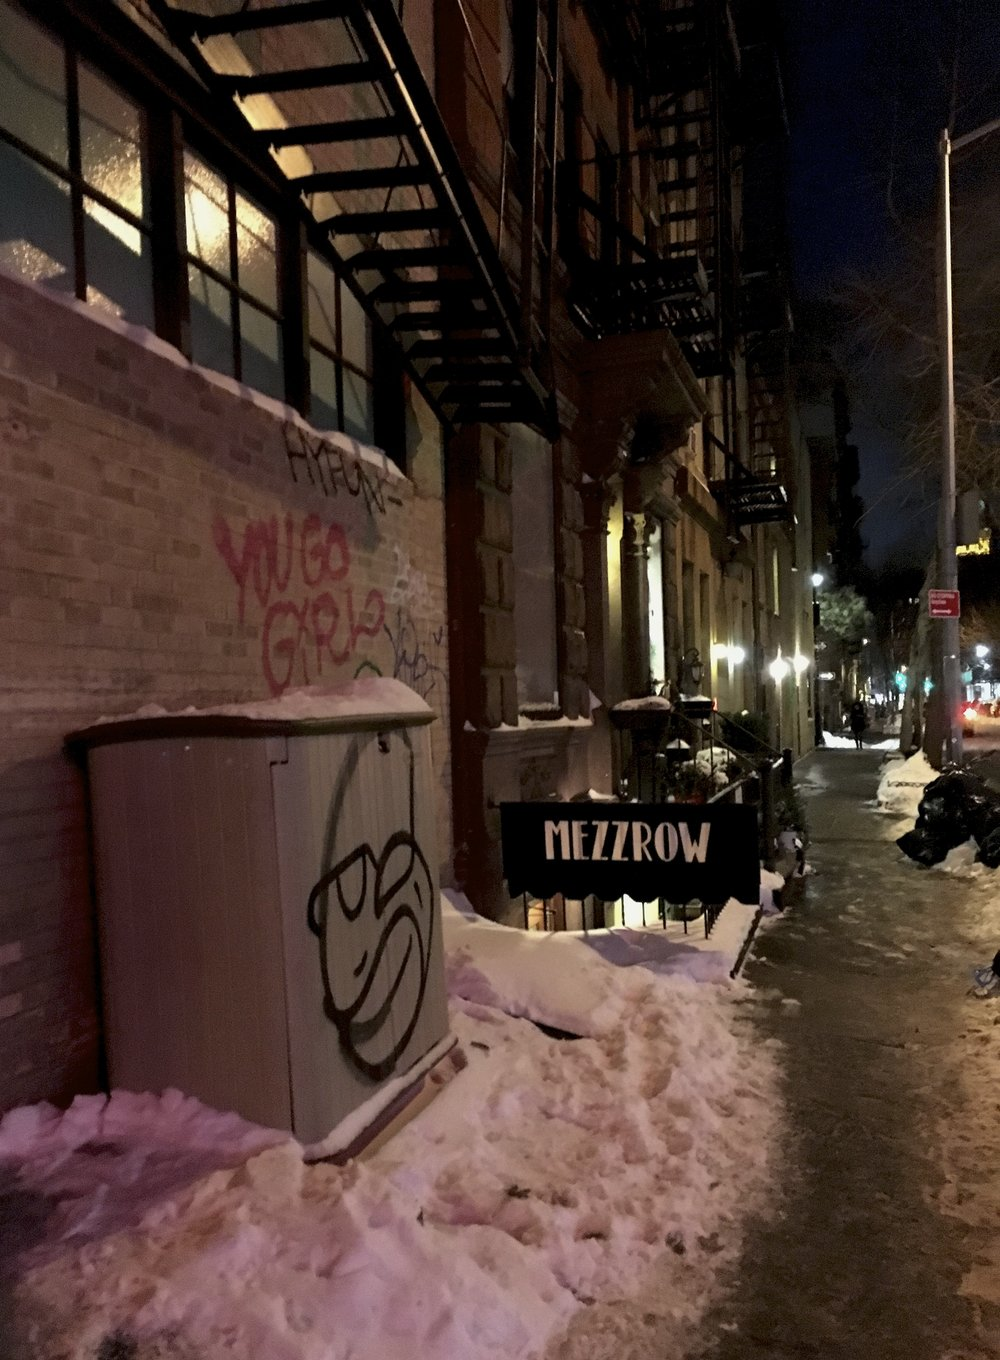 """MEZZROW is a jazz venue, a listening room and lounge in Greenwich Village located in the basement of 163 W. 10th St.  We are easy to miss so look carefully!"""